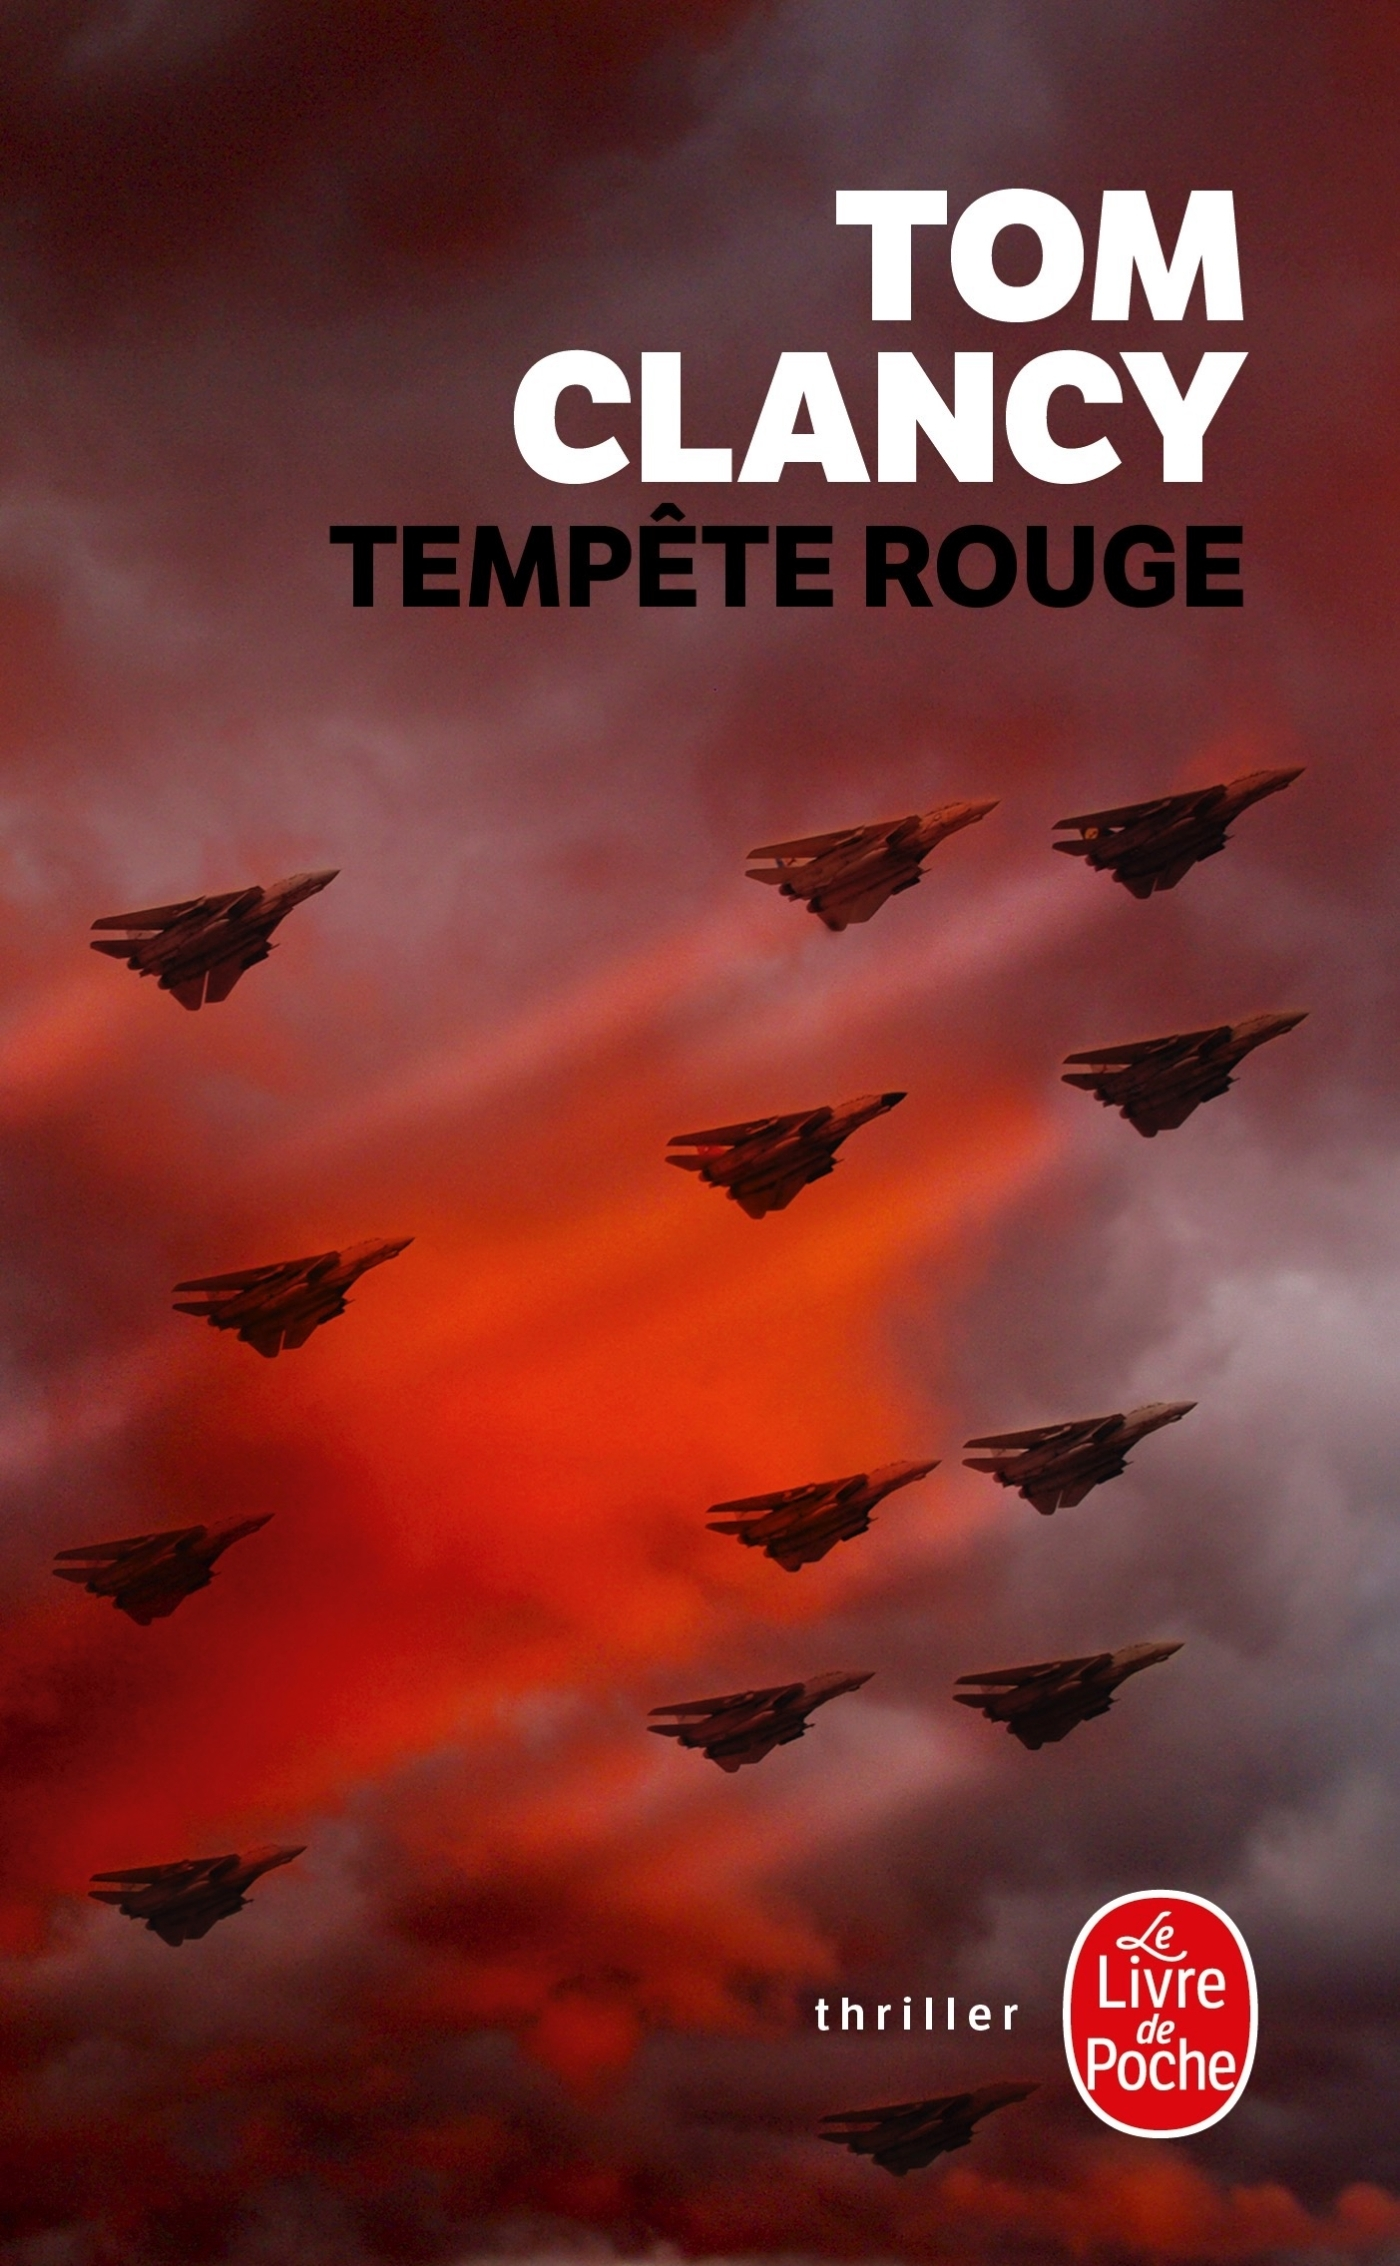 TEMPETE ROUGE